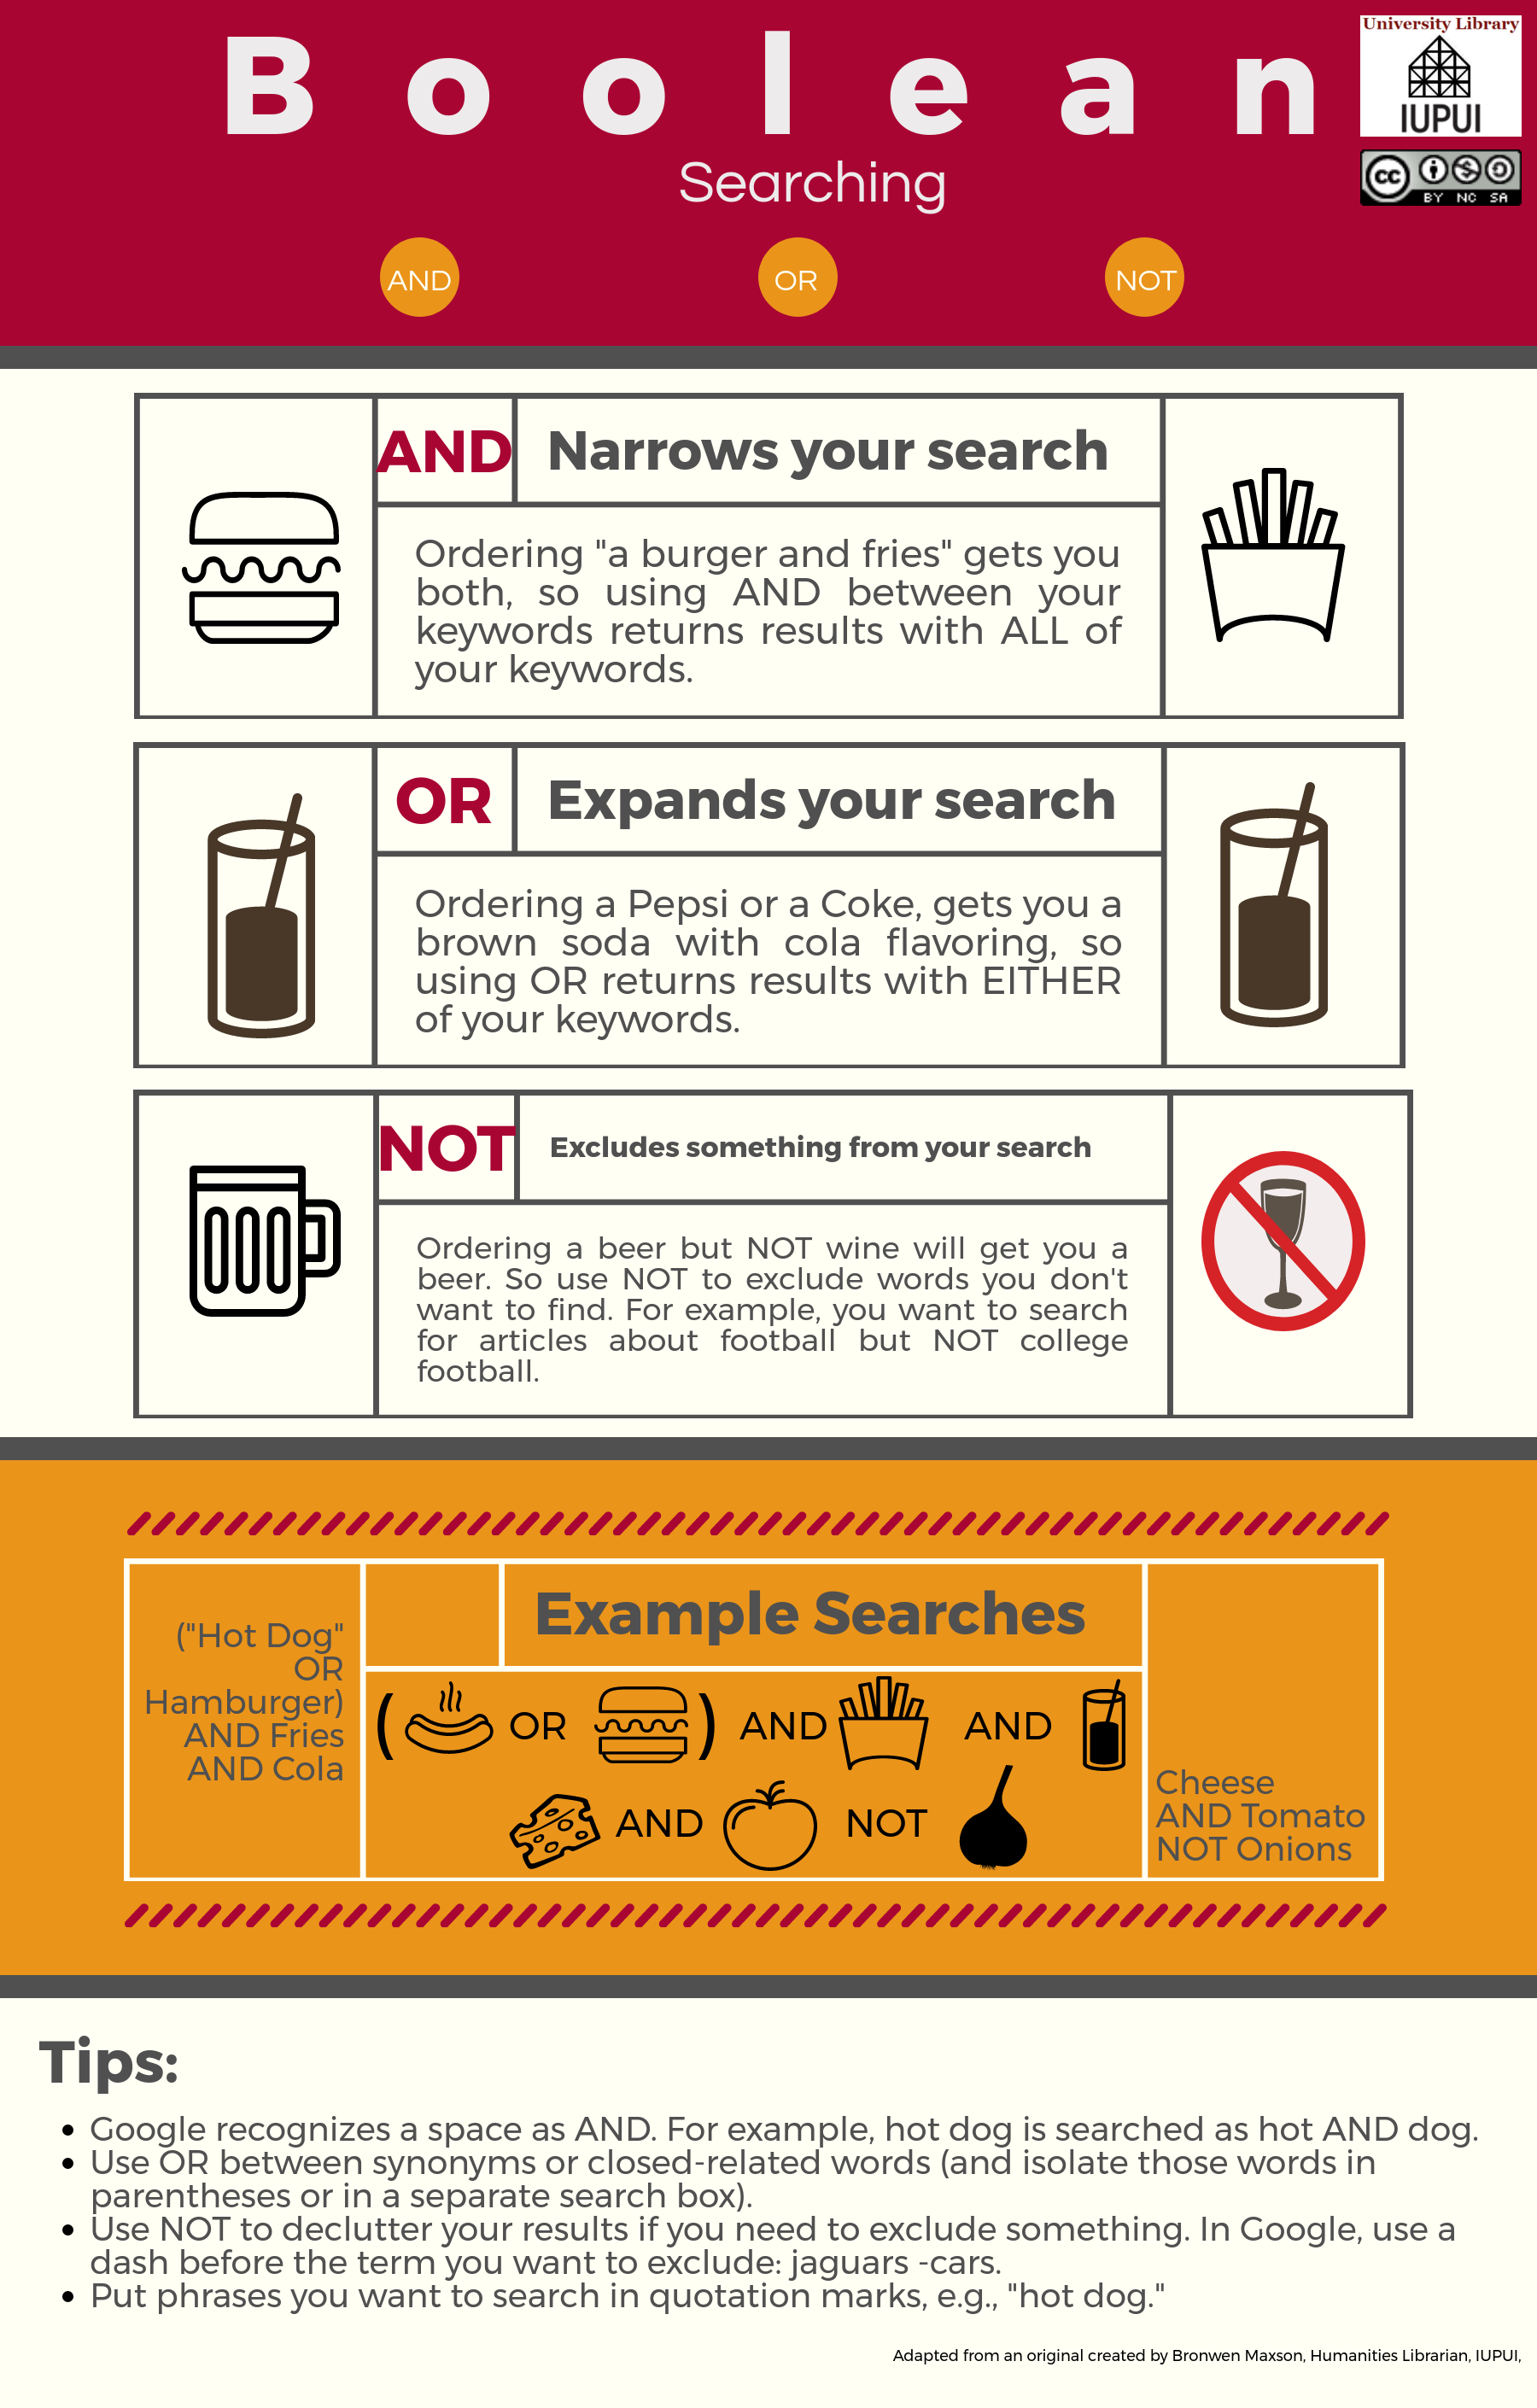 Boolean Searching Infographic